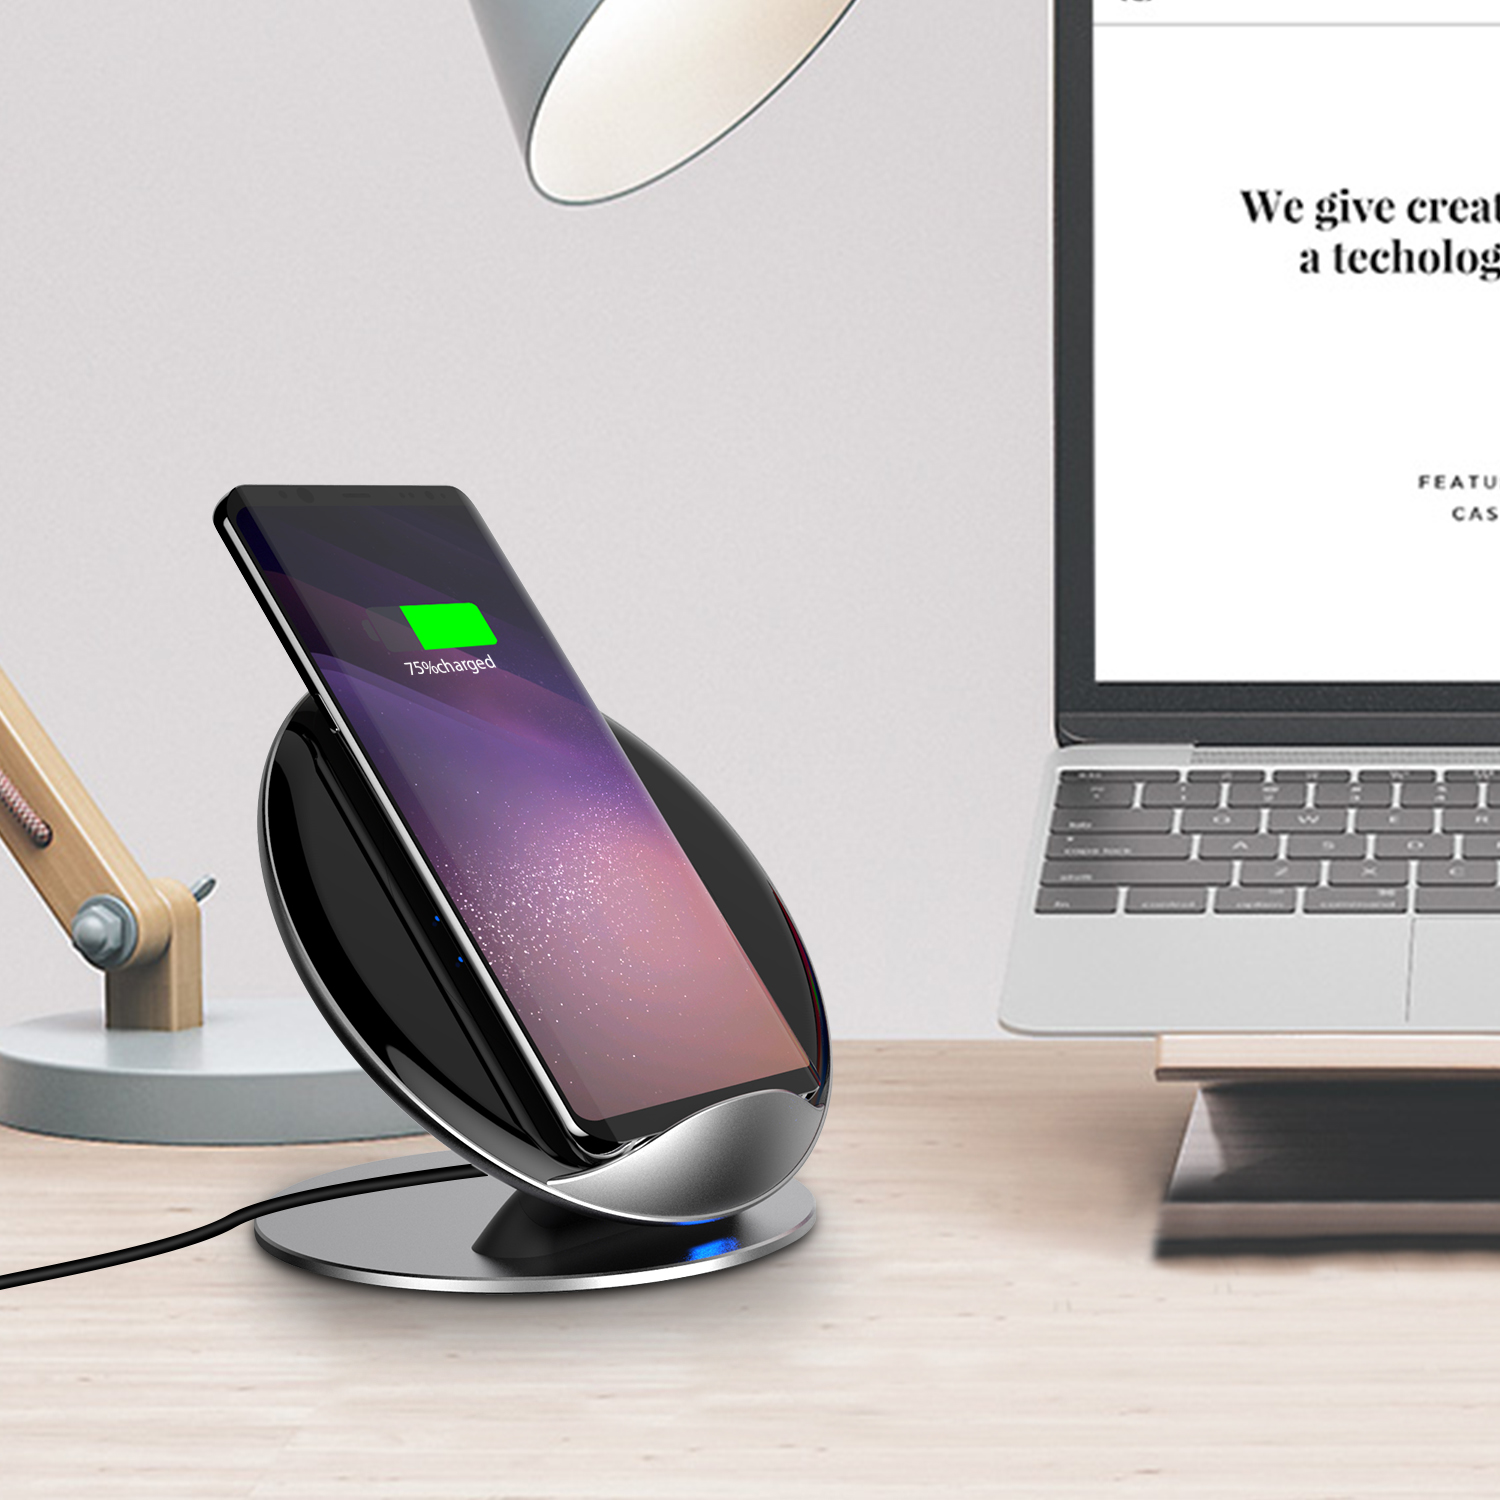 samsung s10 s9 s8 s7 qi induktive ladestation fast wireless charger iphone xs ebay. Black Bedroom Furniture Sets. Home Design Ideas